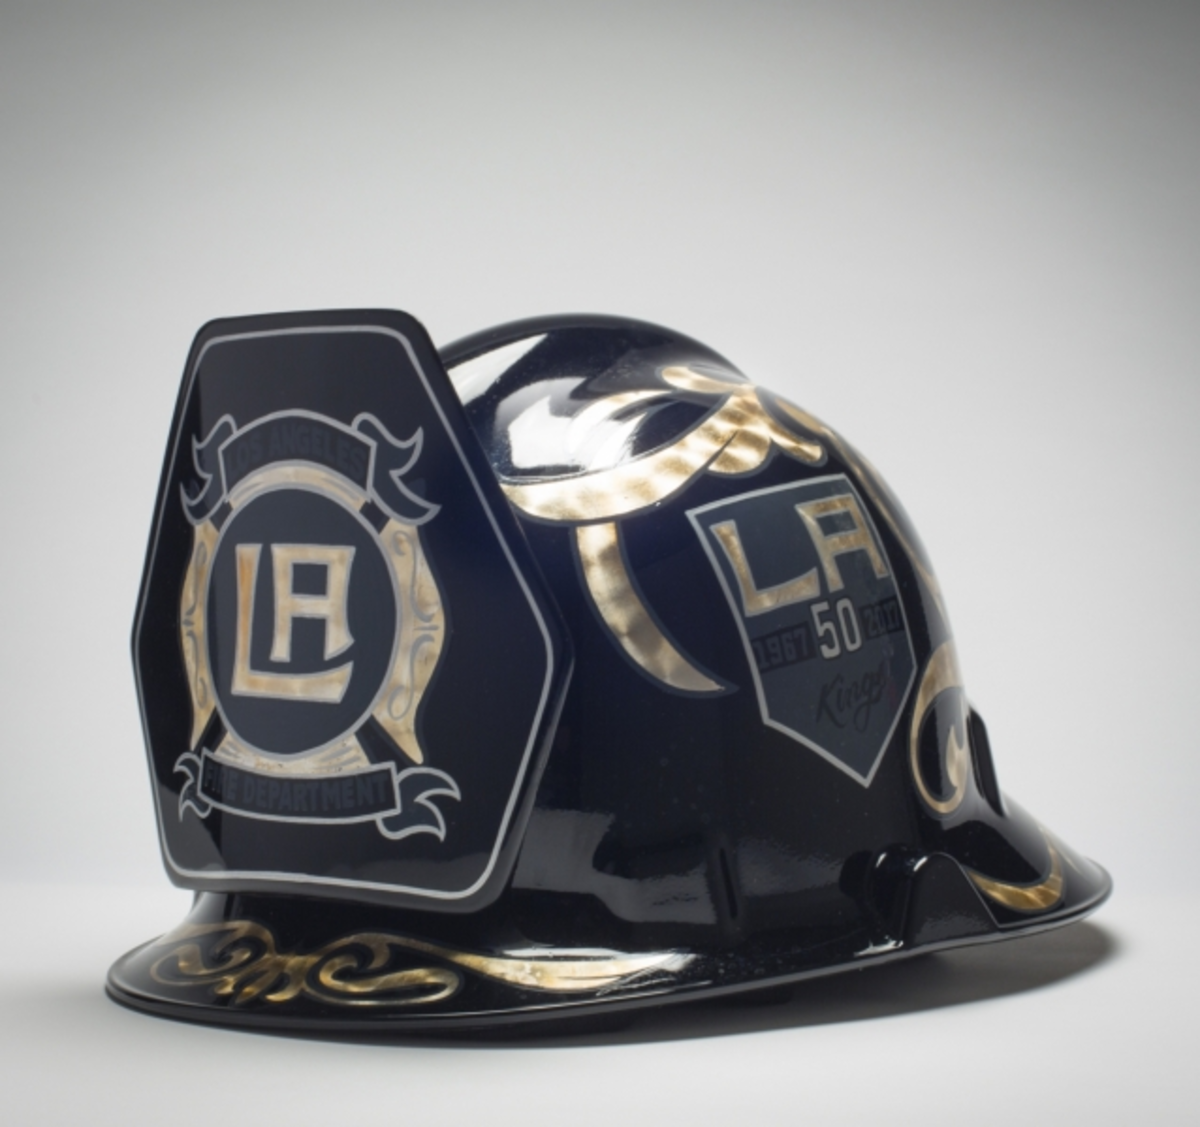 The Kings Care Foundation will auction off the signed LA Kings fire helmet as part of LA Kings Firefighter Appreciation Night at STAPLES Center on January 6, 2018. Proceeds to benefit the Los Angeles Fire Department Foundation.